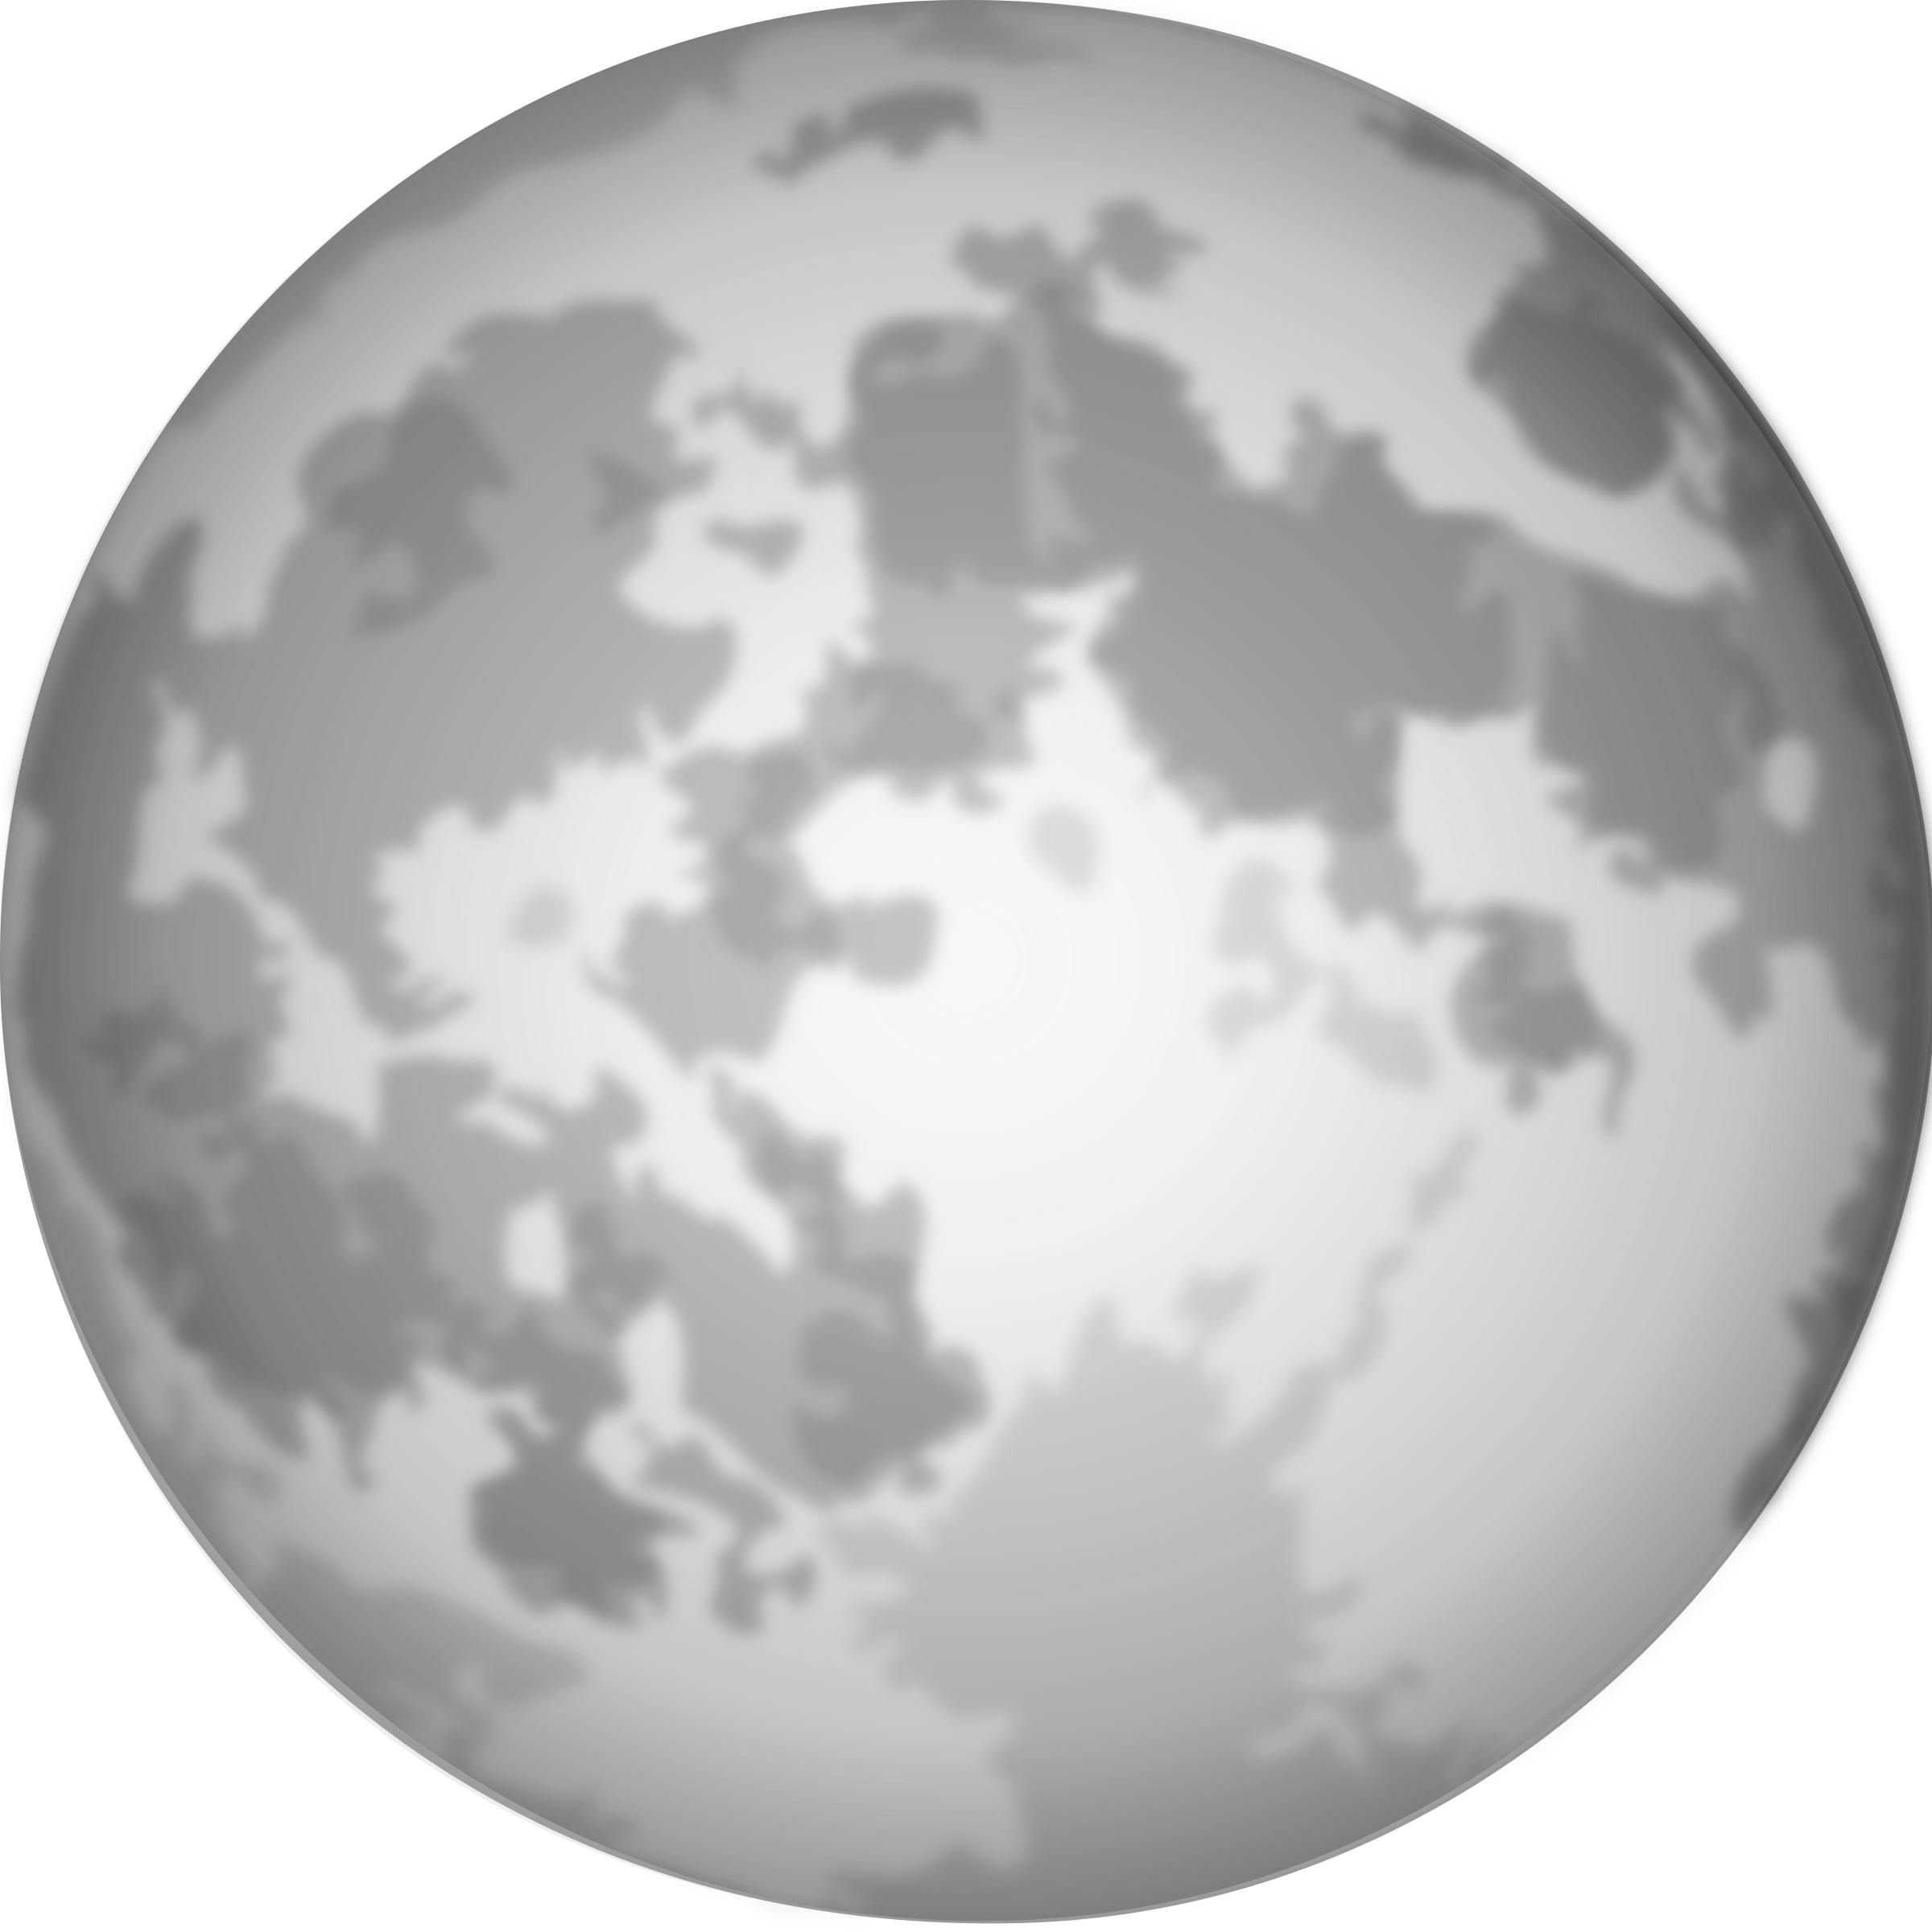 Moon png images free. Drawing detail halloween banner